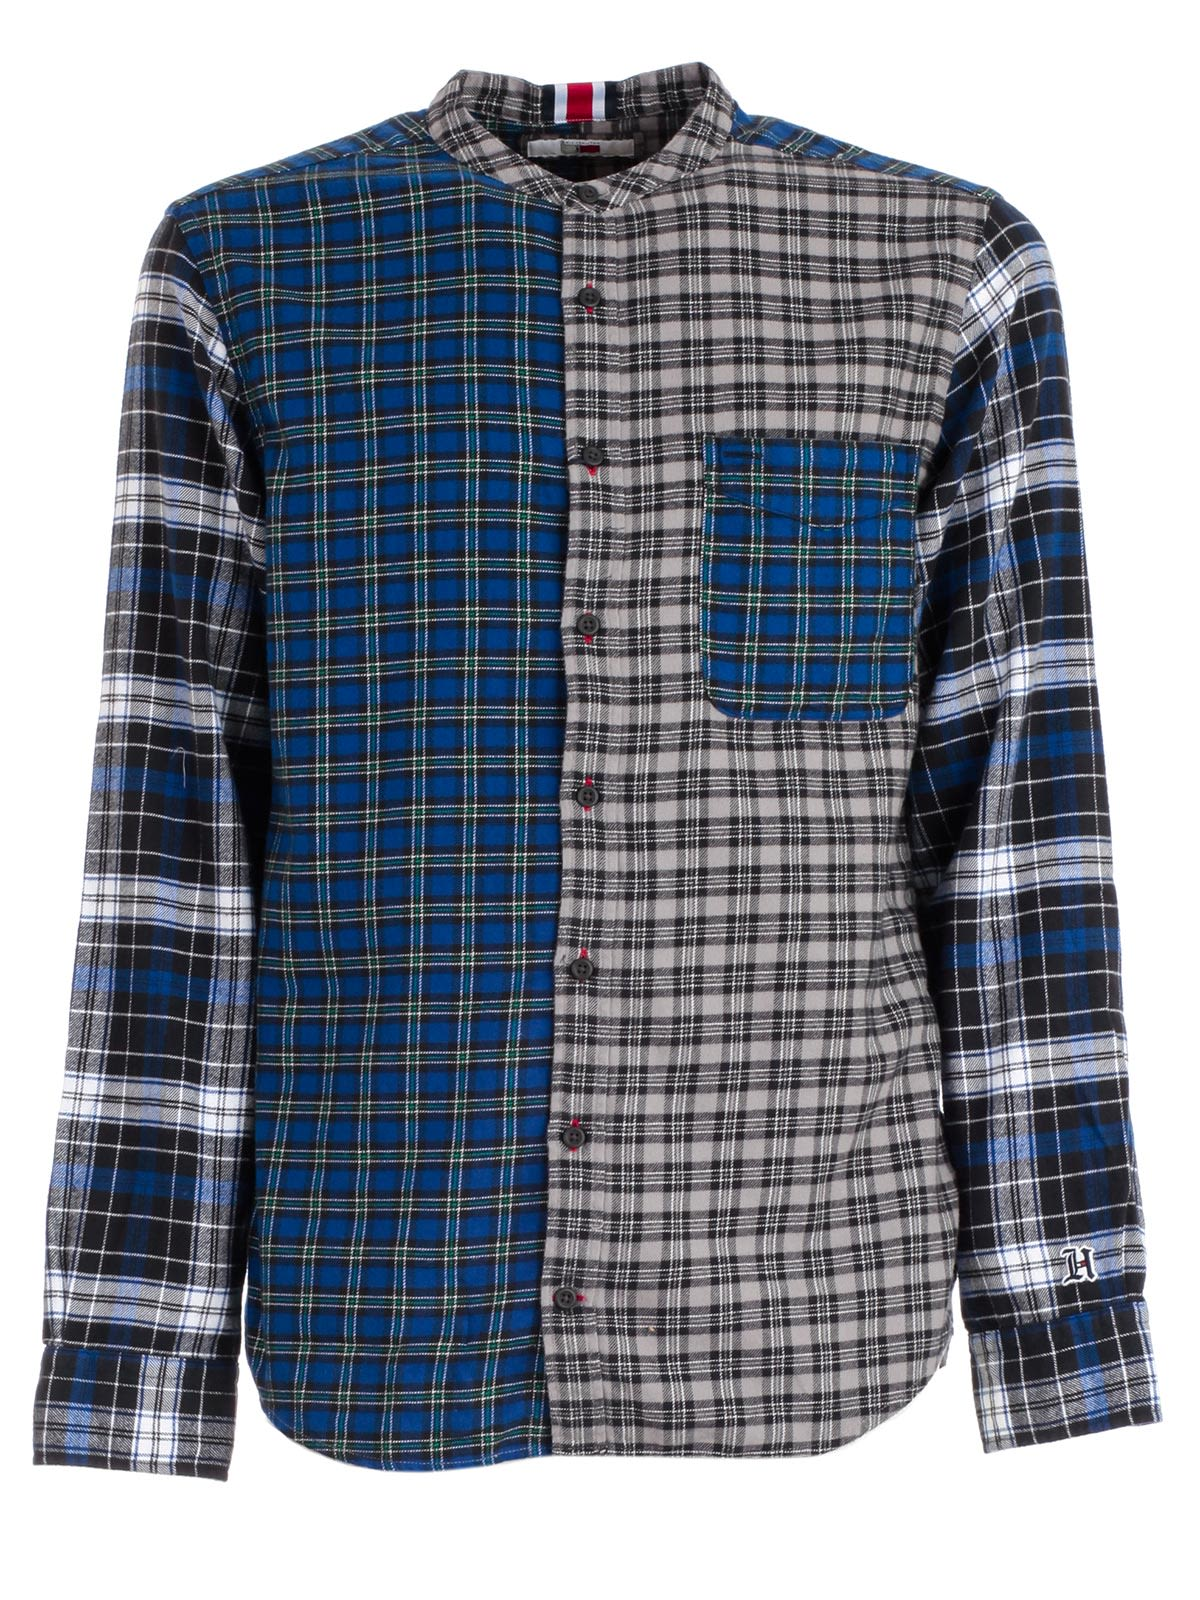 TOMMY HILFIGER X Lewis Hamilton Check Button-Down Shirt in Blue